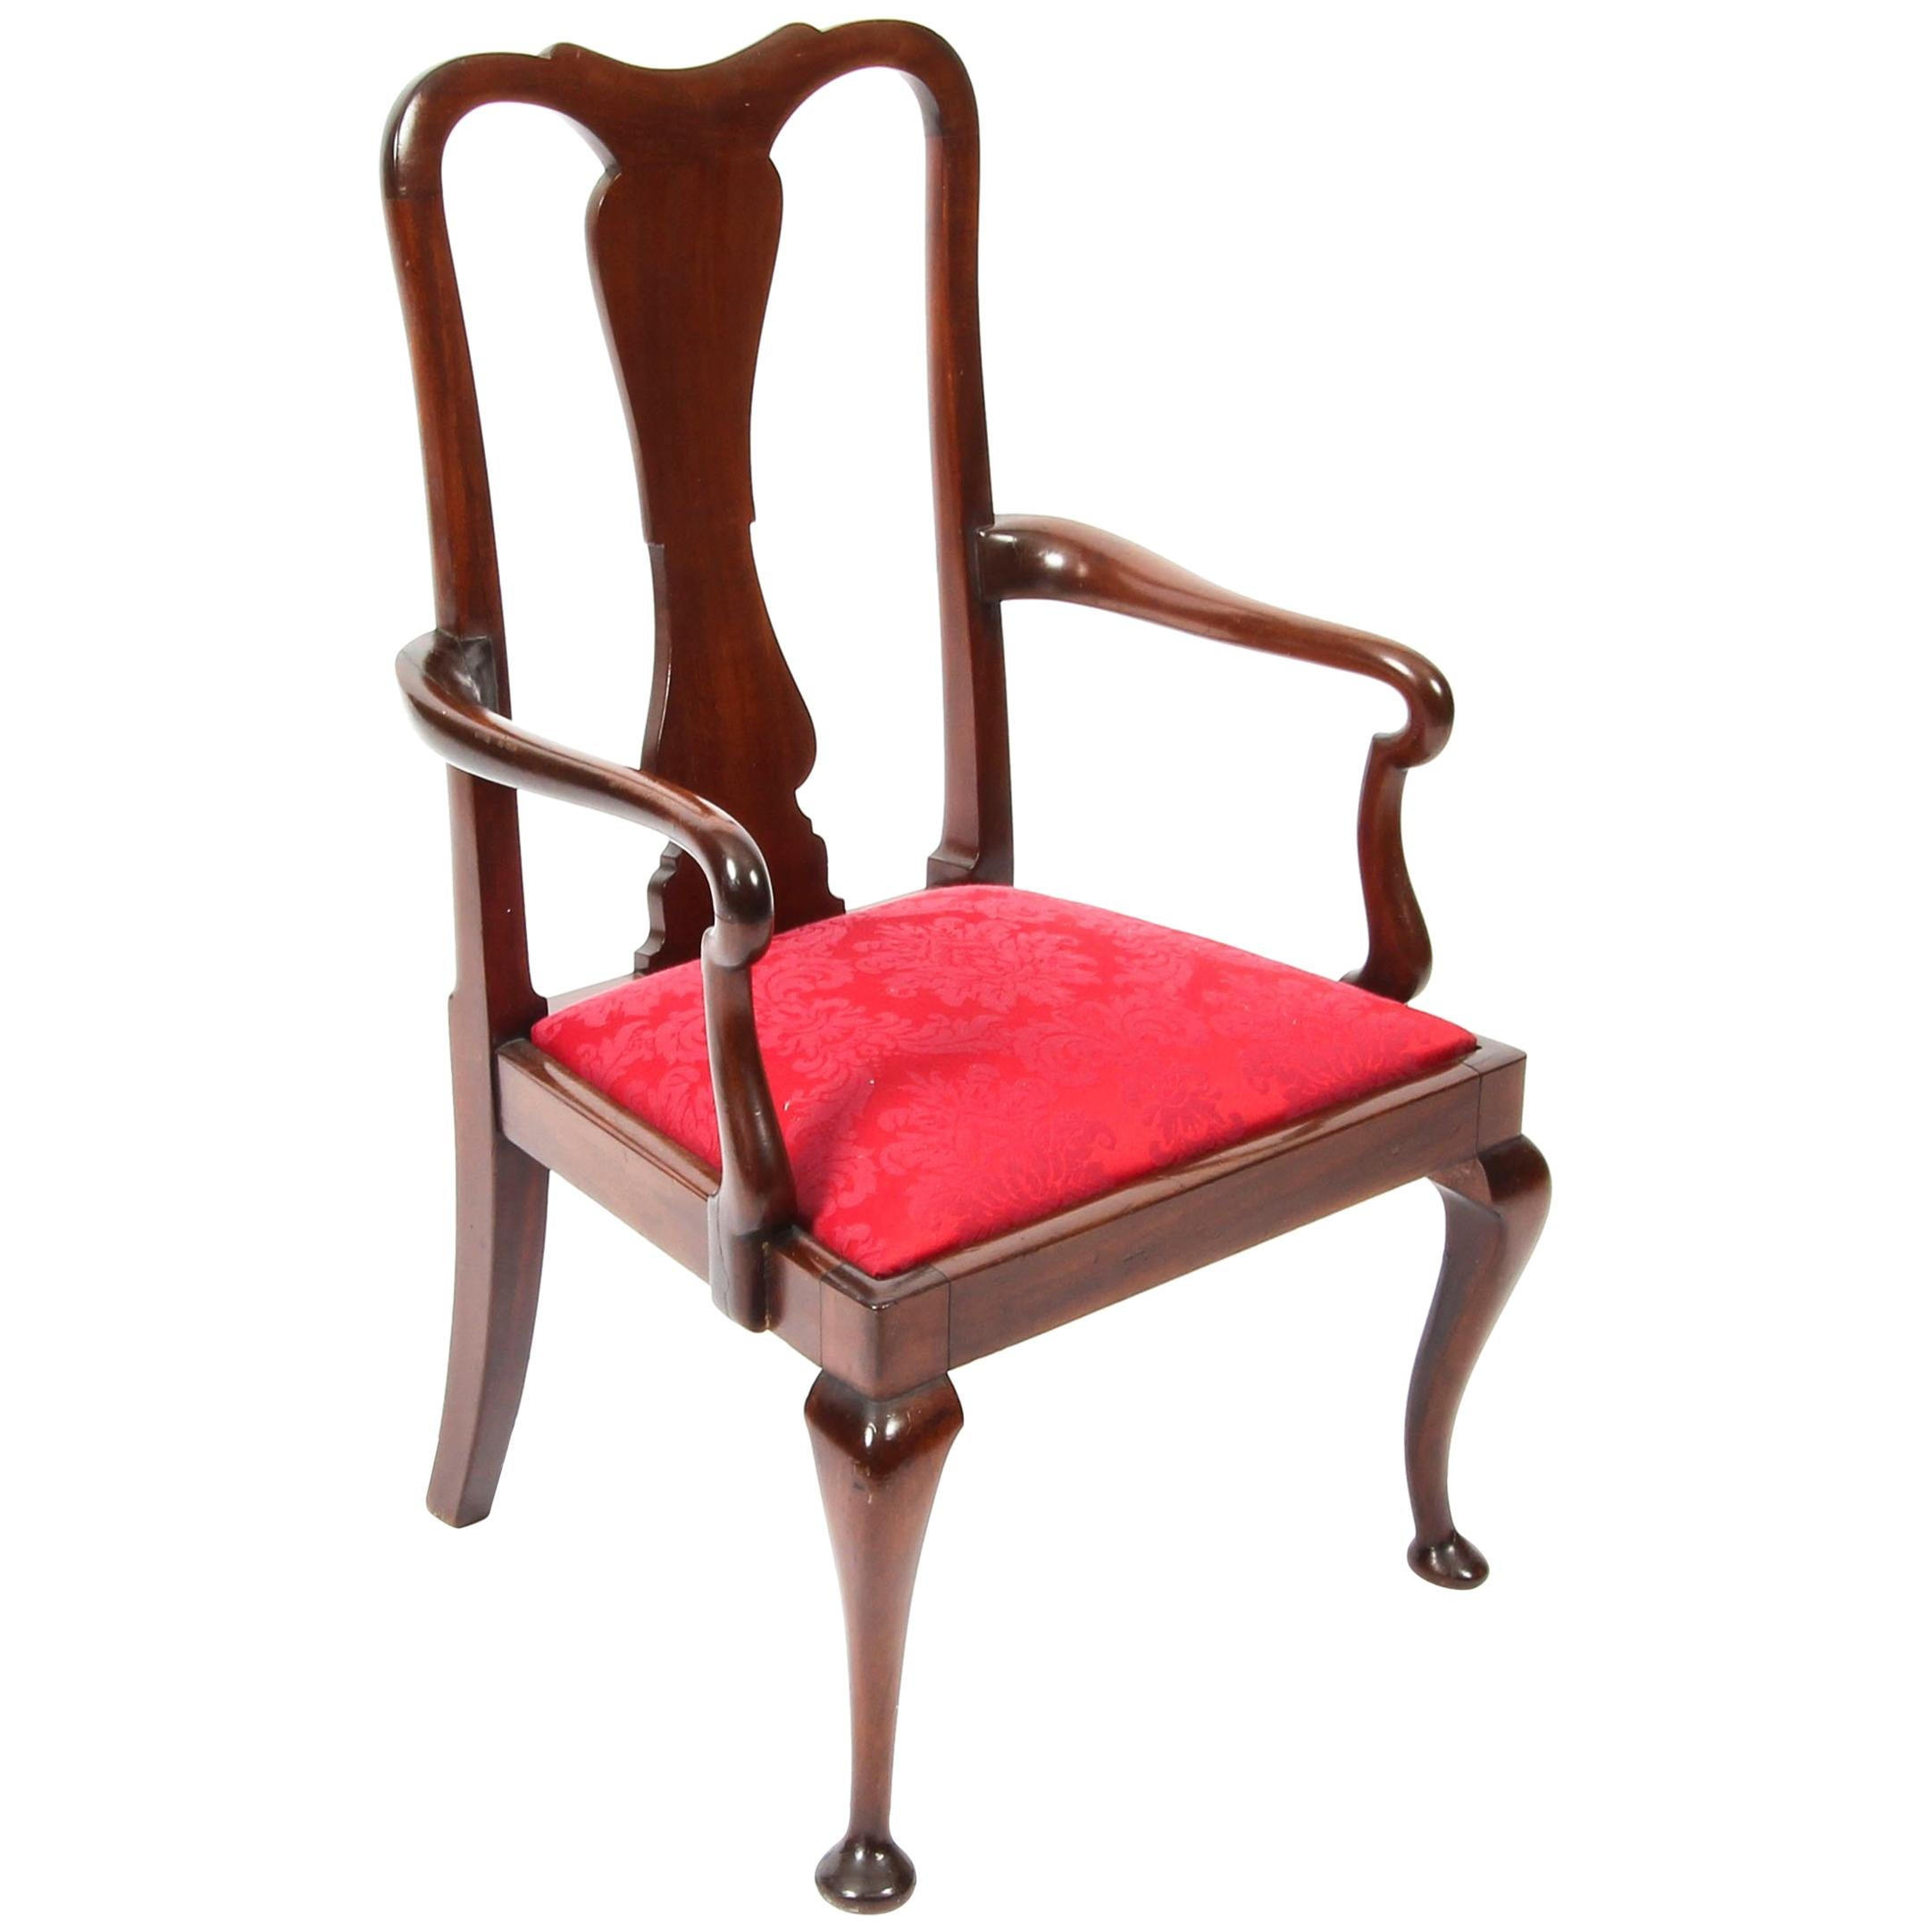 Chairs Helpful Set Of 6 Early 20th Century Mahogany Queen Anne Dining Chairs Clients First Antique Furniture